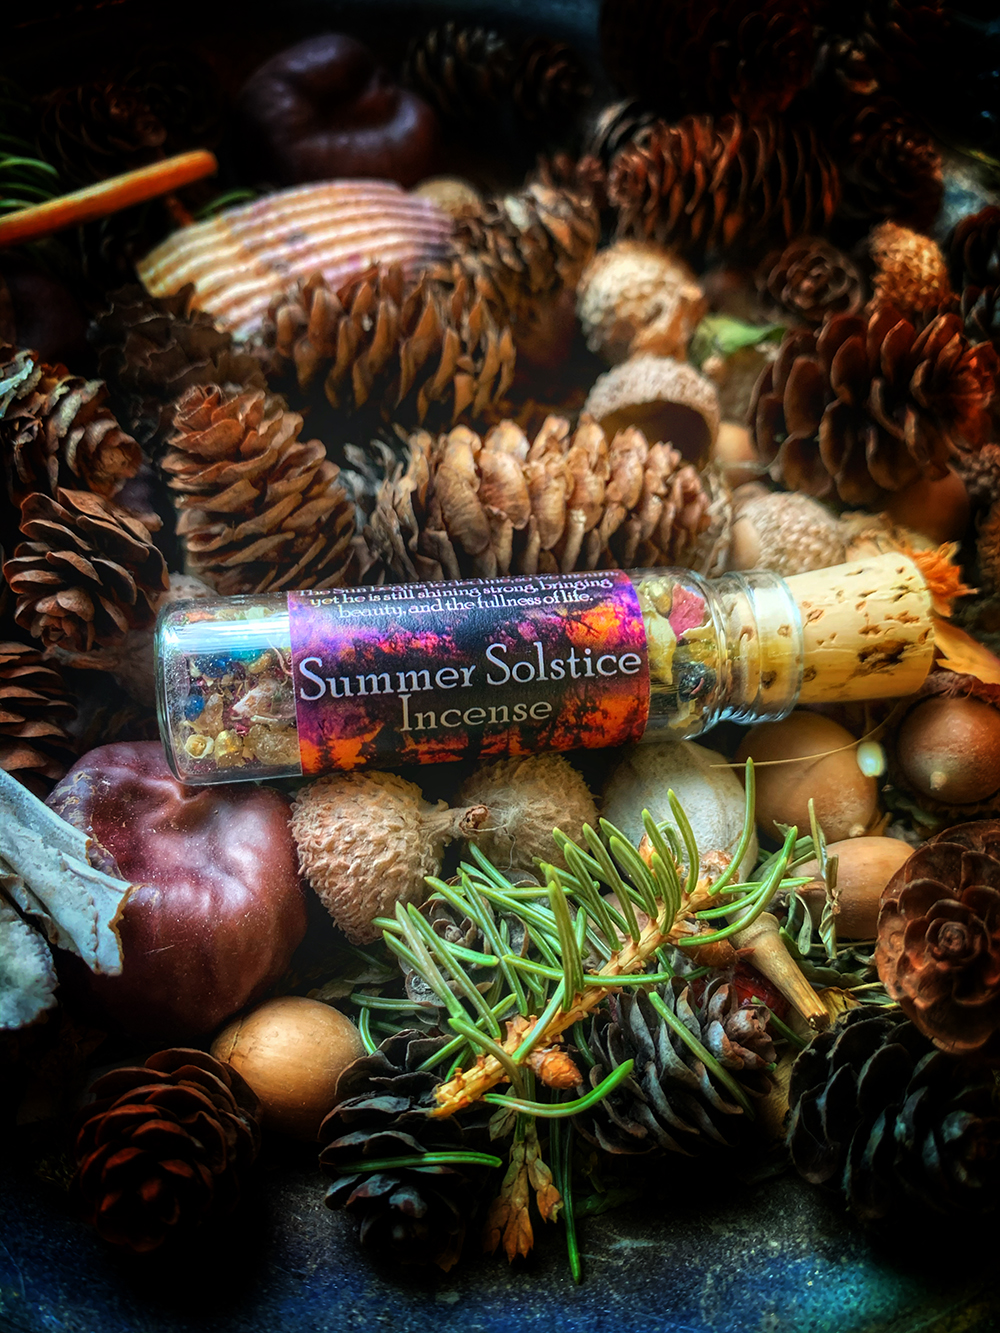 Summer Solstice Incense